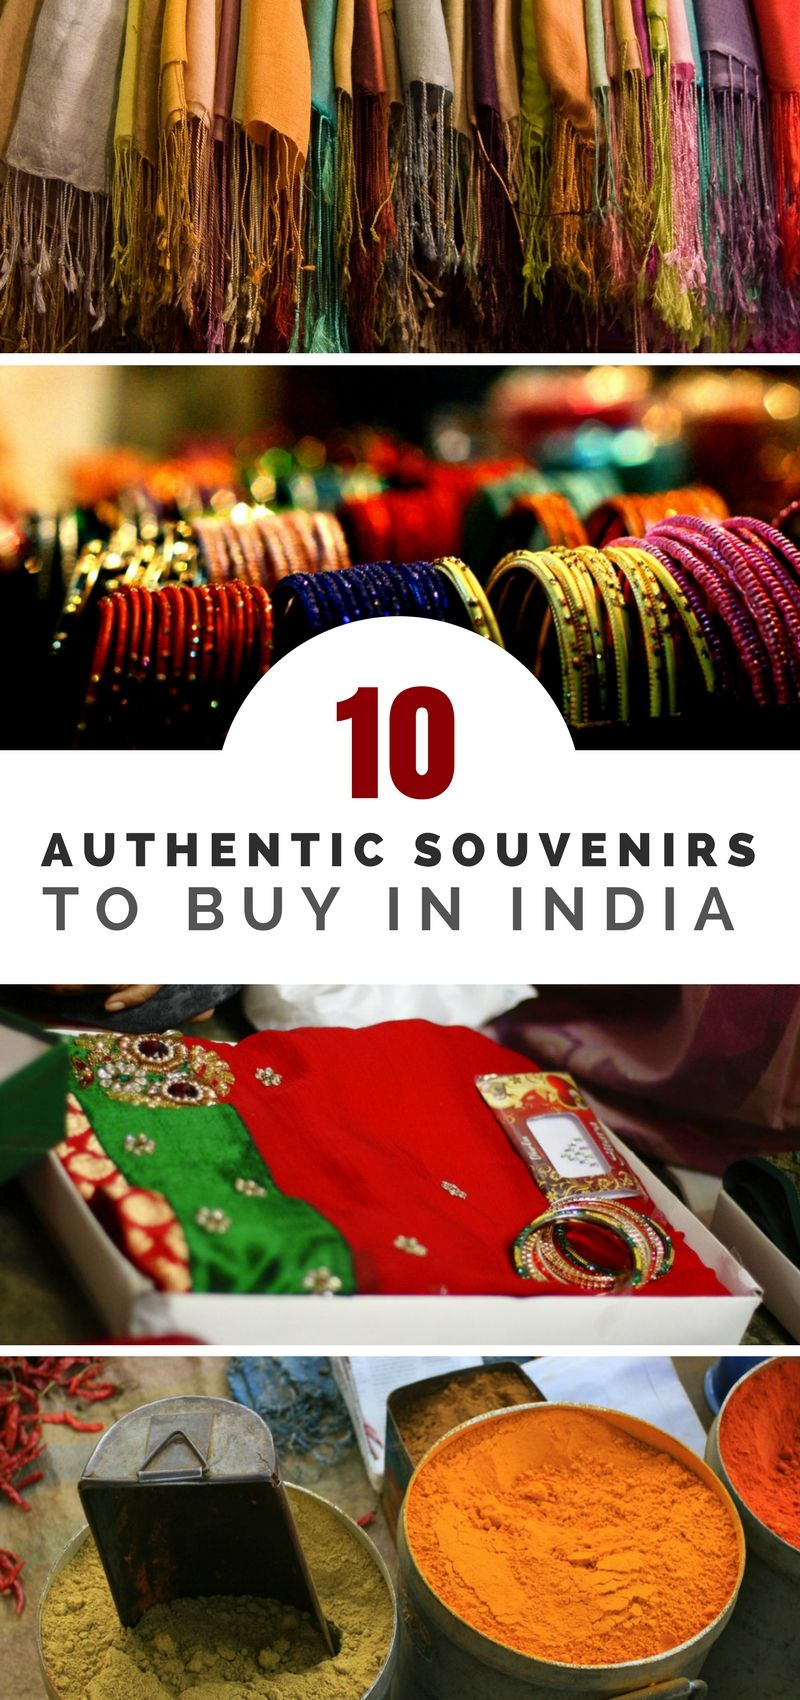 Check out 10 amazing souvenirs you can in India